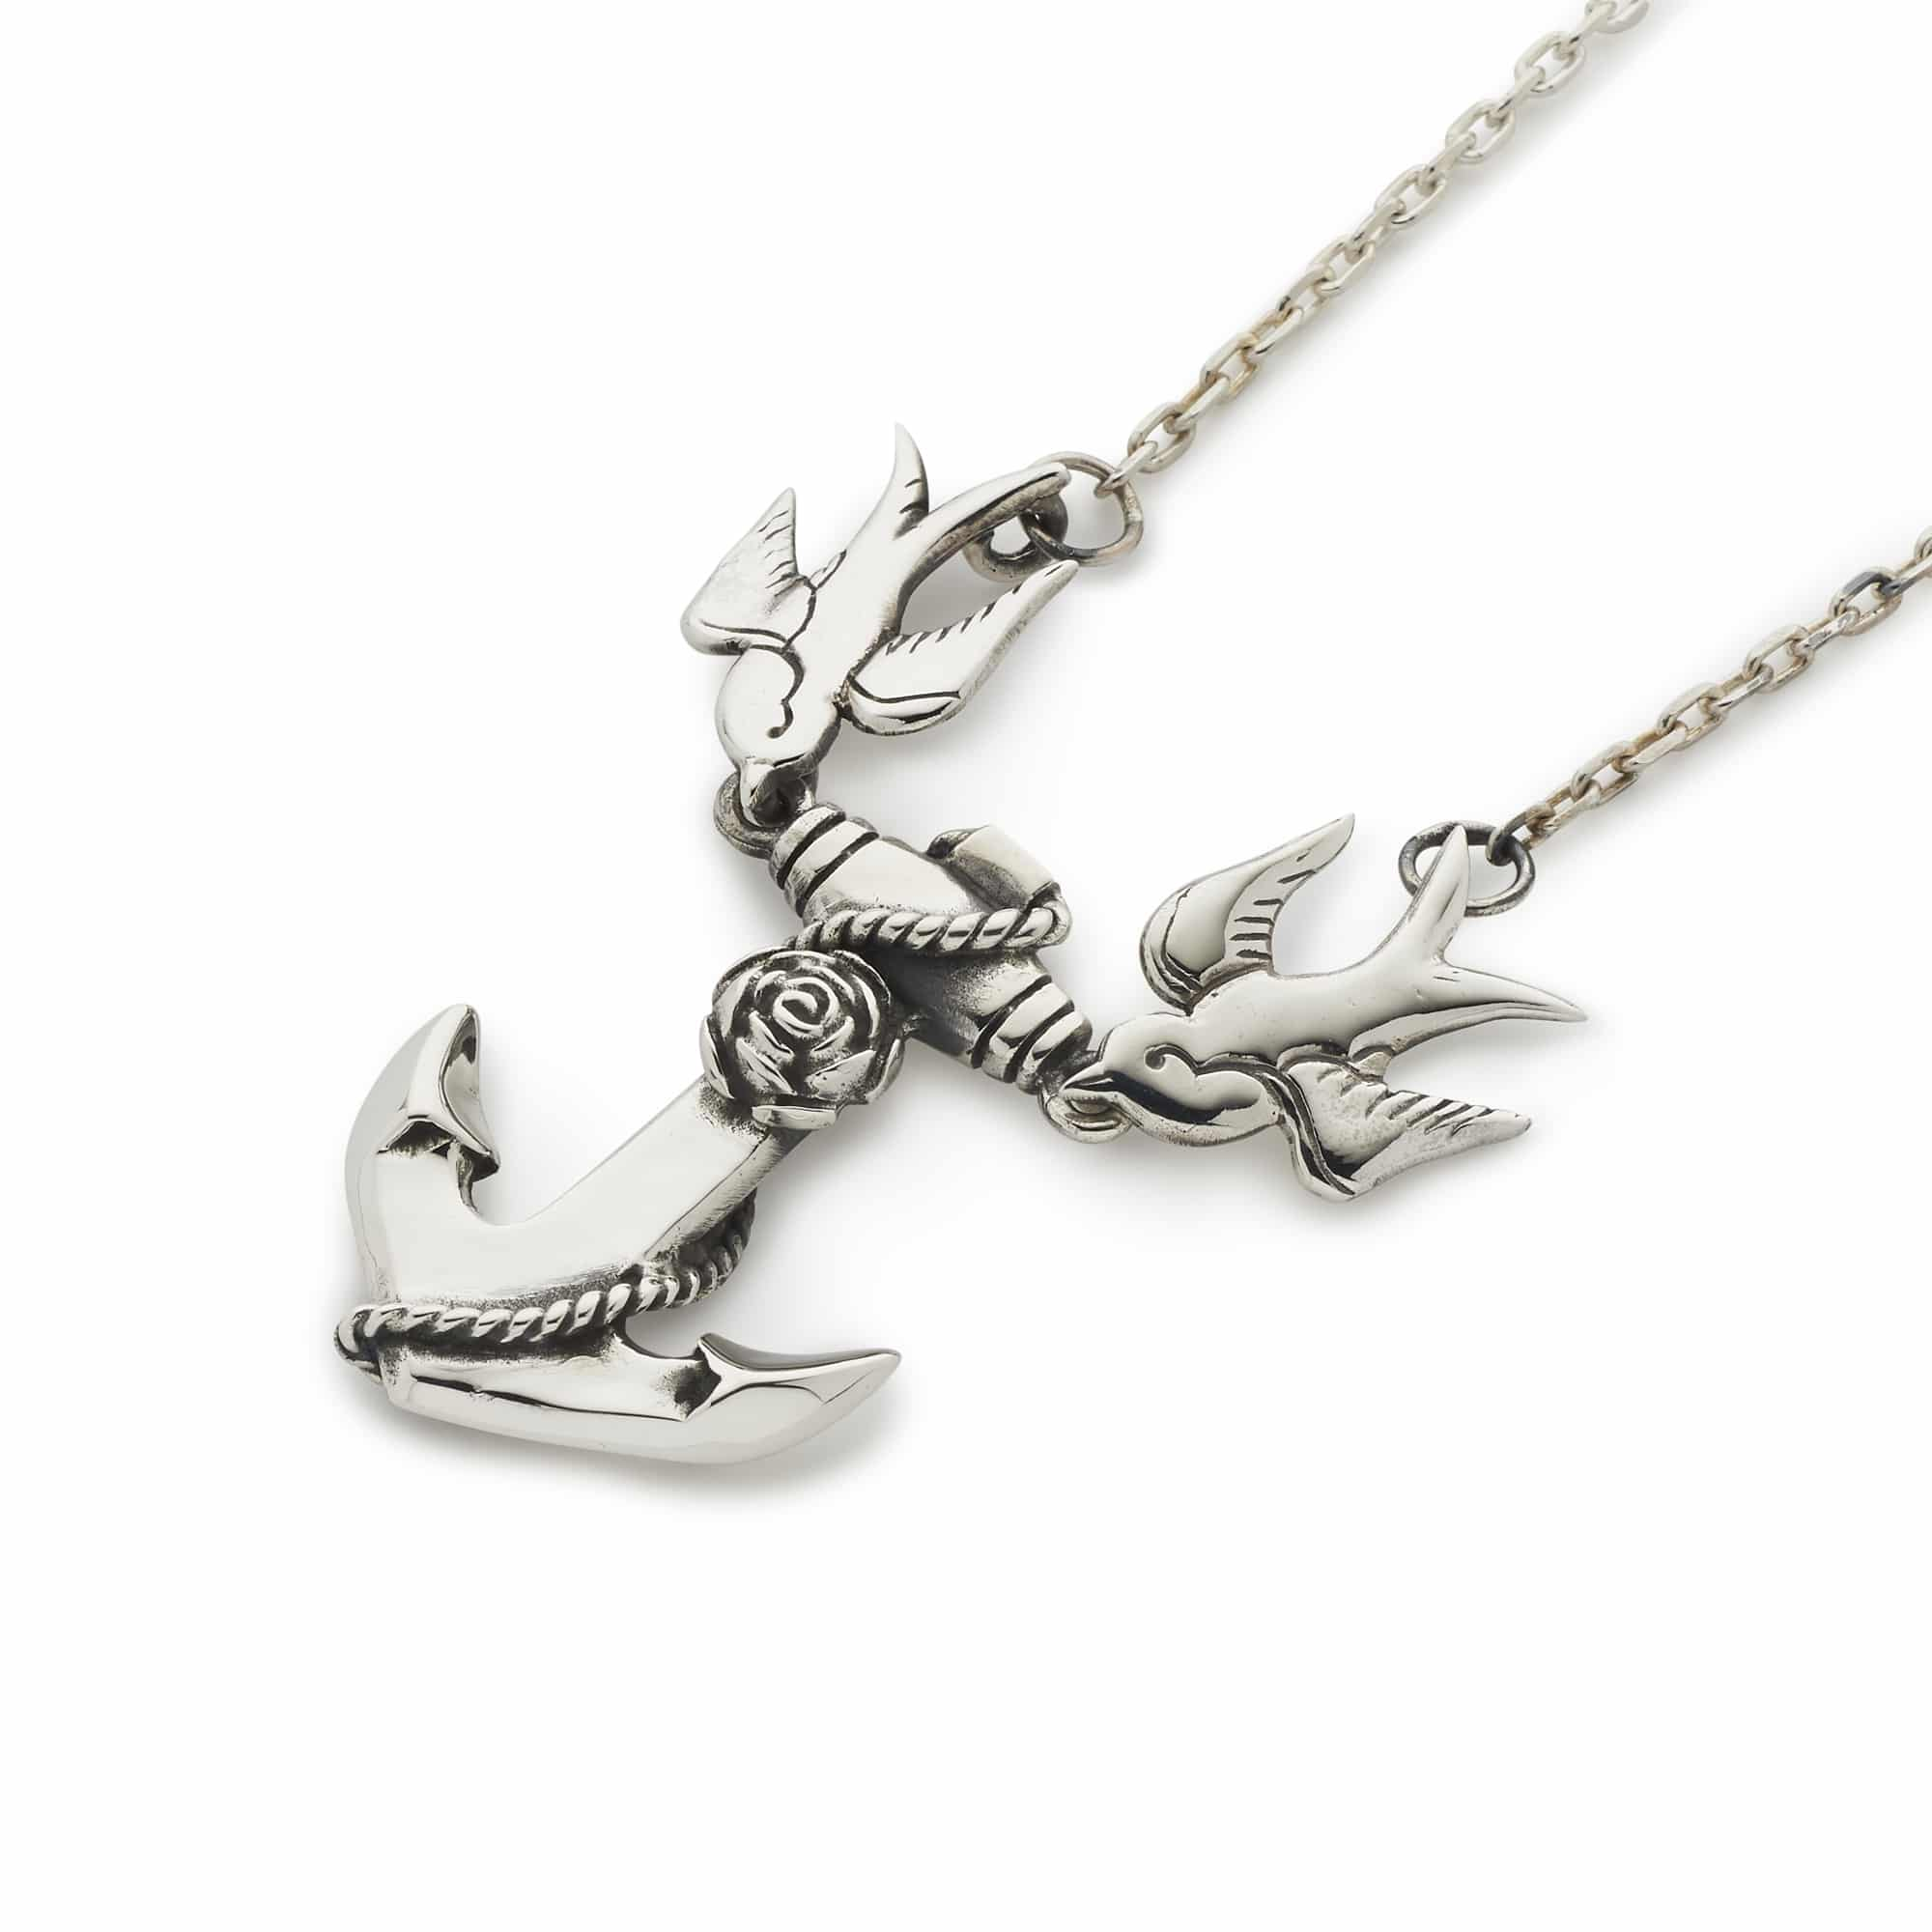 Anchor swallows necklace with chain the great frog anchor swallows necklace with chain aloadofball Images